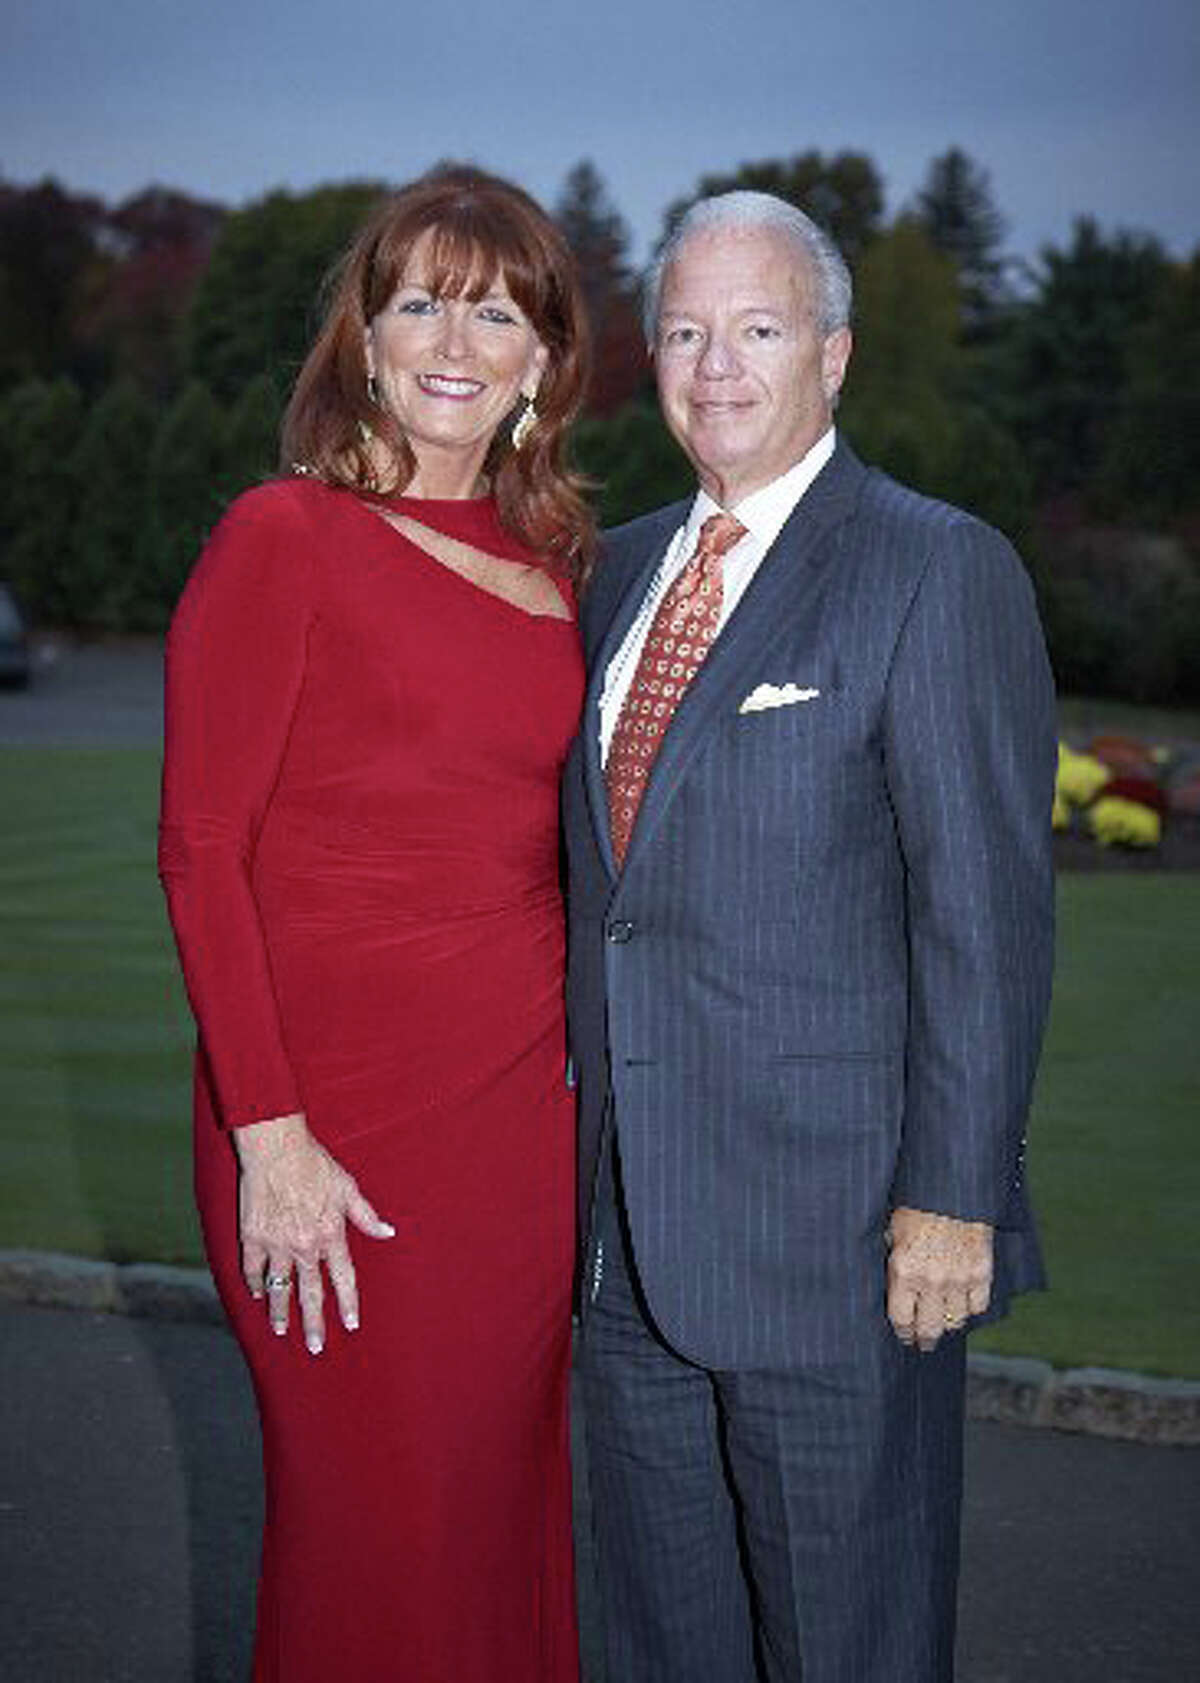 Greenwich Hospital will hold its annual black-tie gala at 6 p.m. on Oct. 25 at the Greenwich Country Club, 19 Doubling Rd. This yearís gala honors hospital President and CEO Frank Corvino, pictured with his wife, Maura, at last yearís gala.